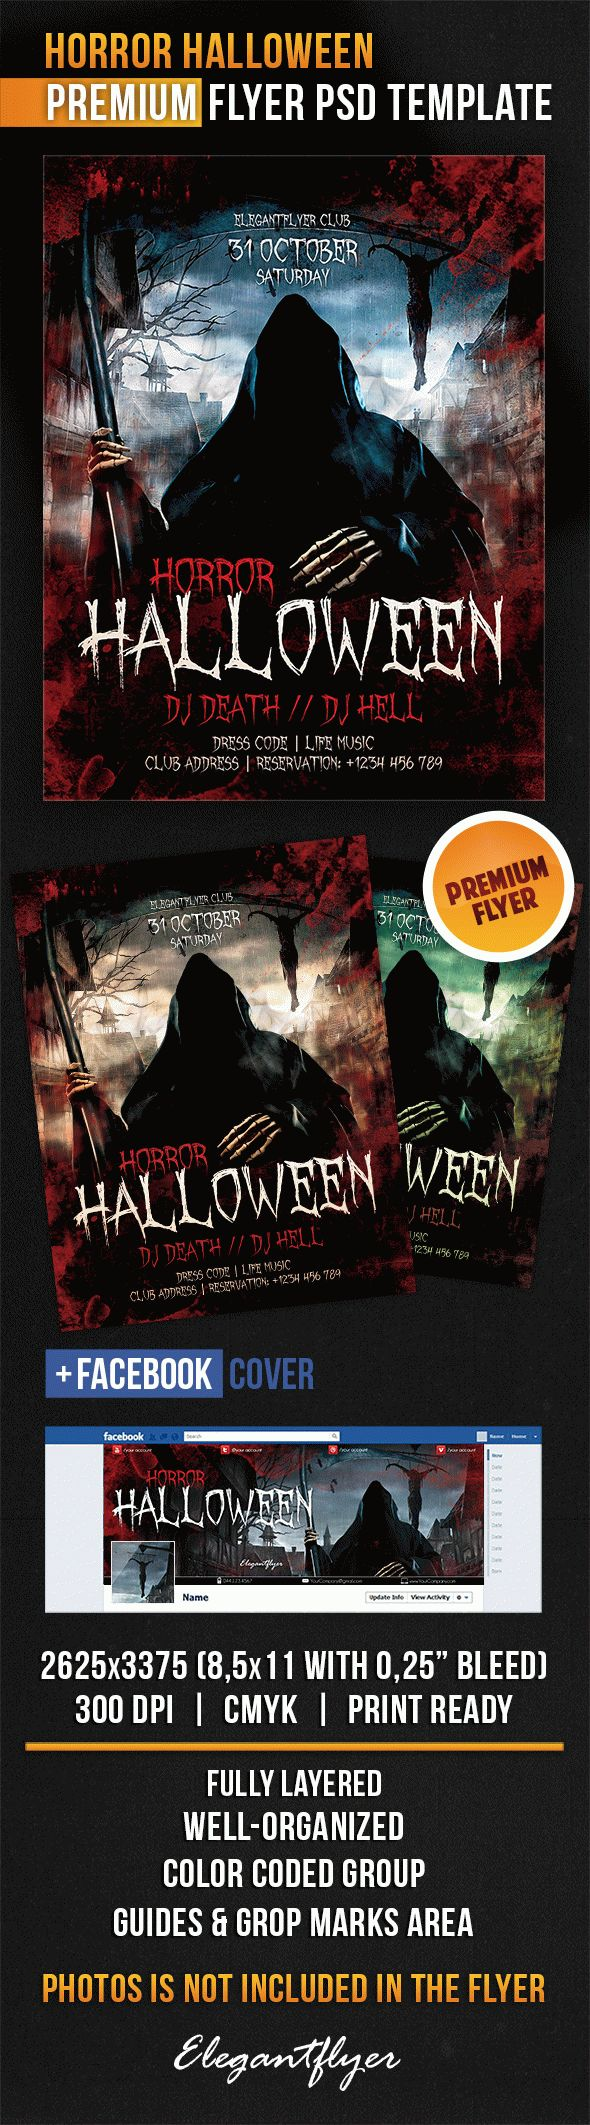 Horror Halloween Flyer in PSD Template